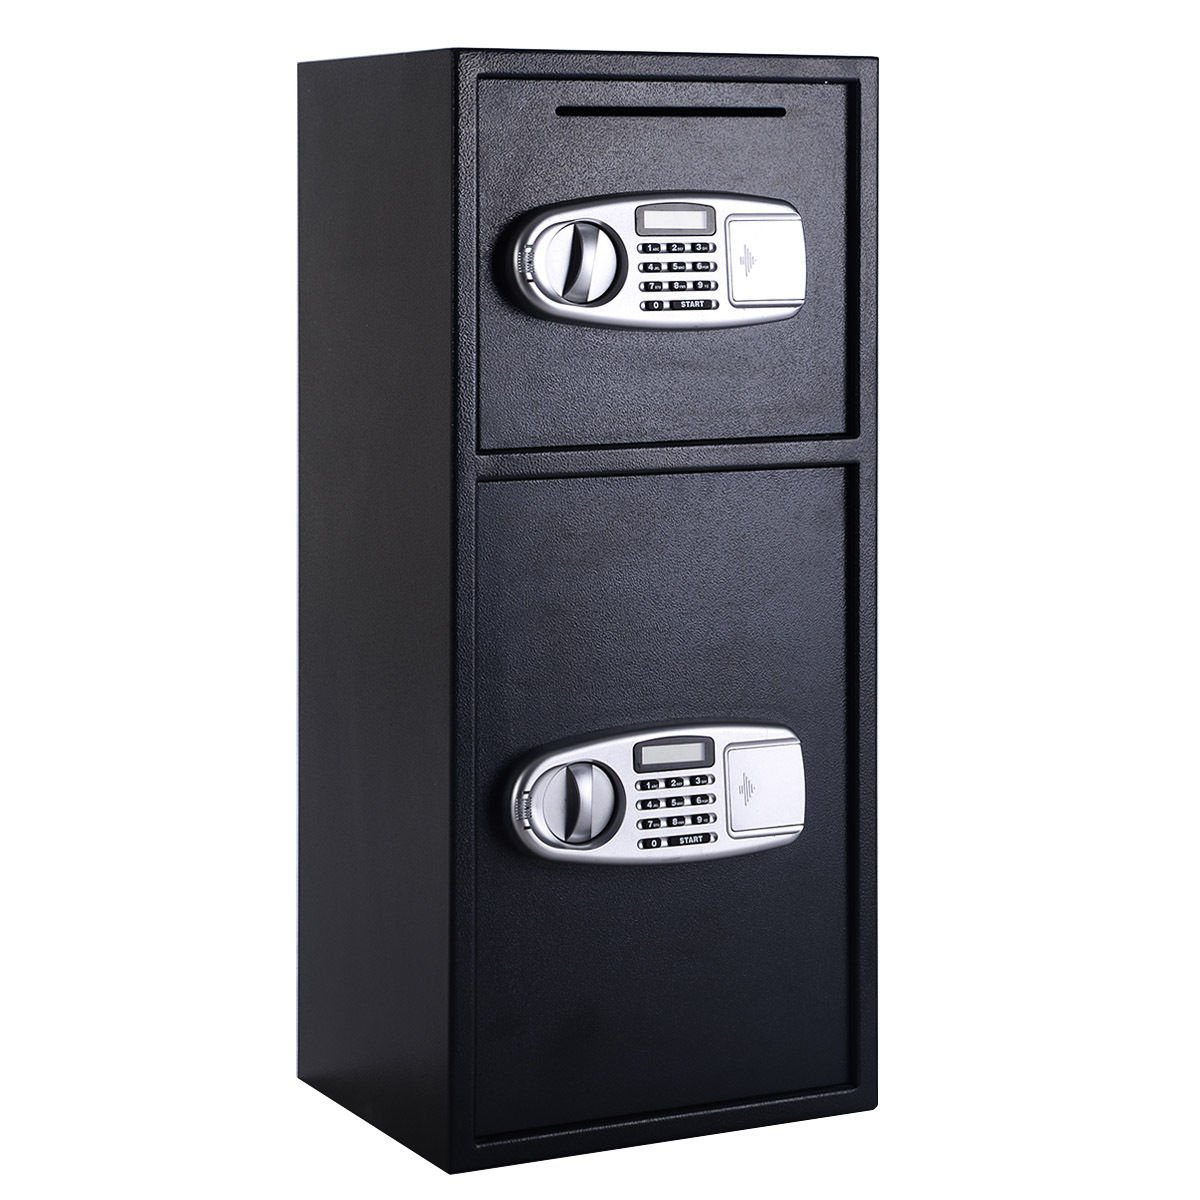 Digital Safe Box Home//Office Double Door Security Lock Safe Depository Drop Box